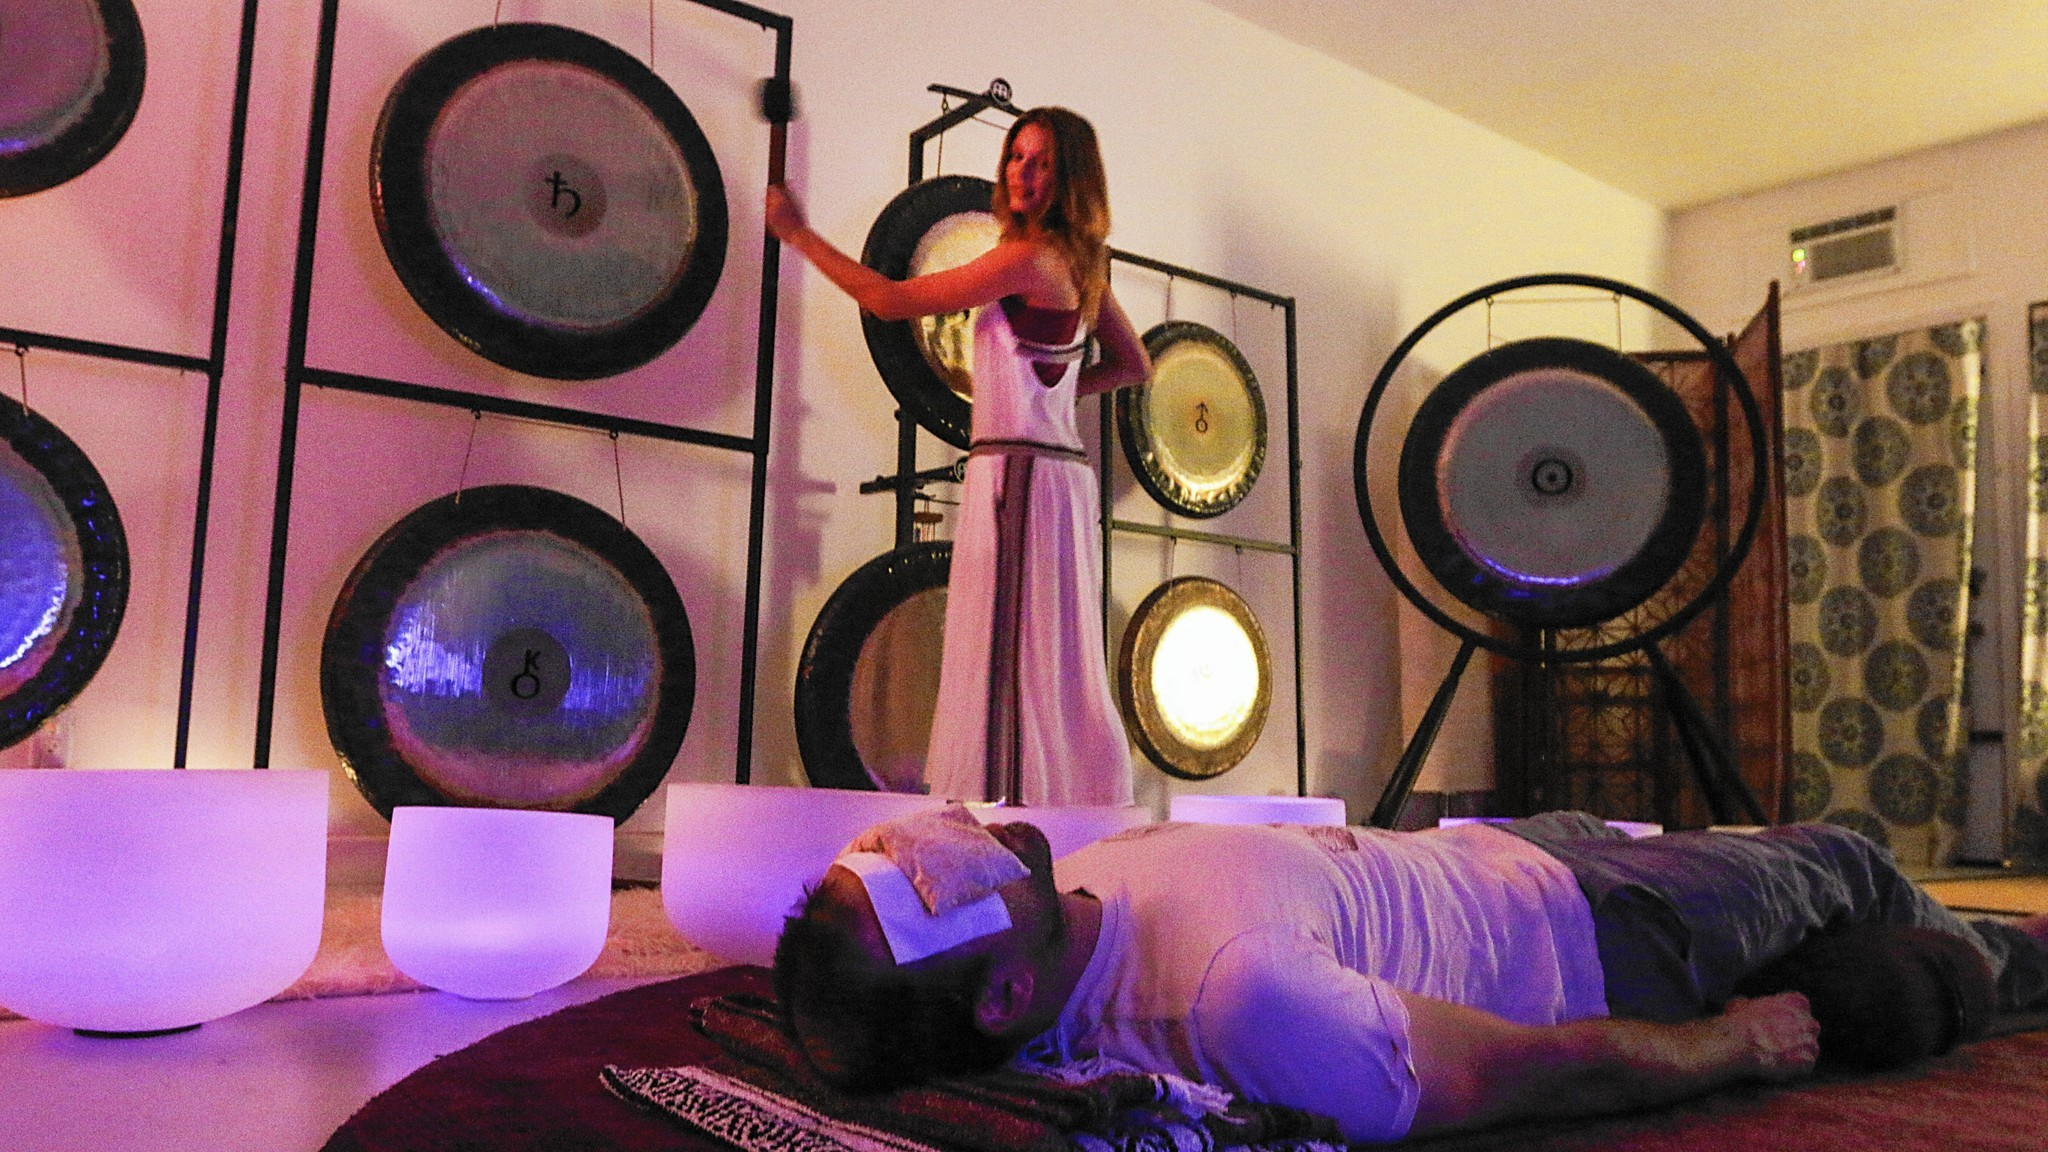 Intertron physical therapy - Relax With A Bath Of Sound Its Practitioners Say It S Like A Massage Or Meditation La Times